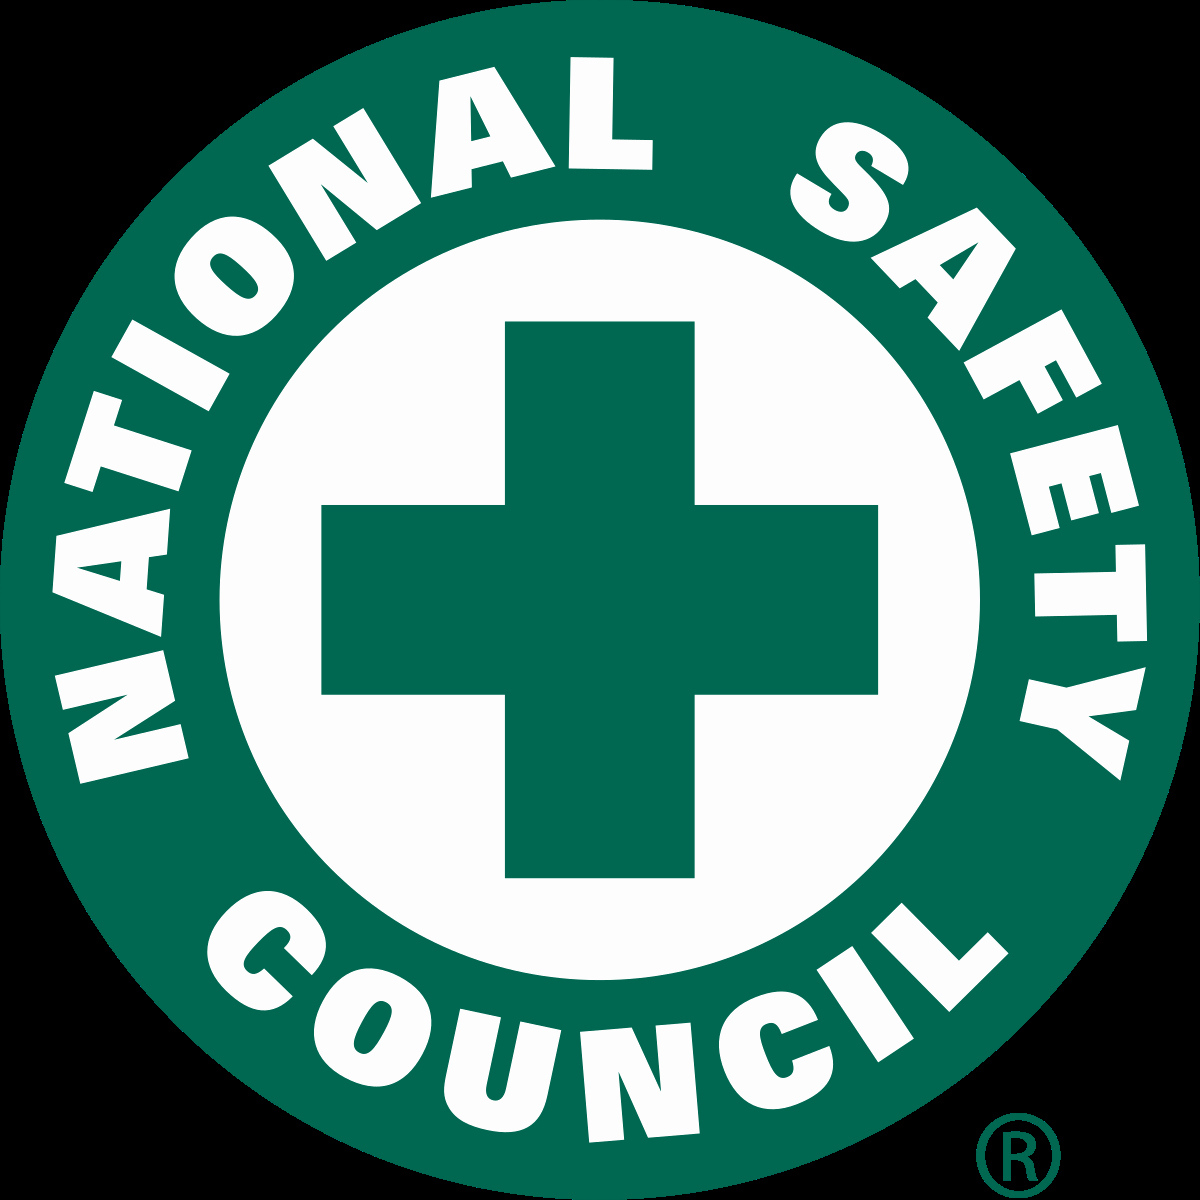 Nsc Cpr Course Certificate Template Lovely National Safety Council